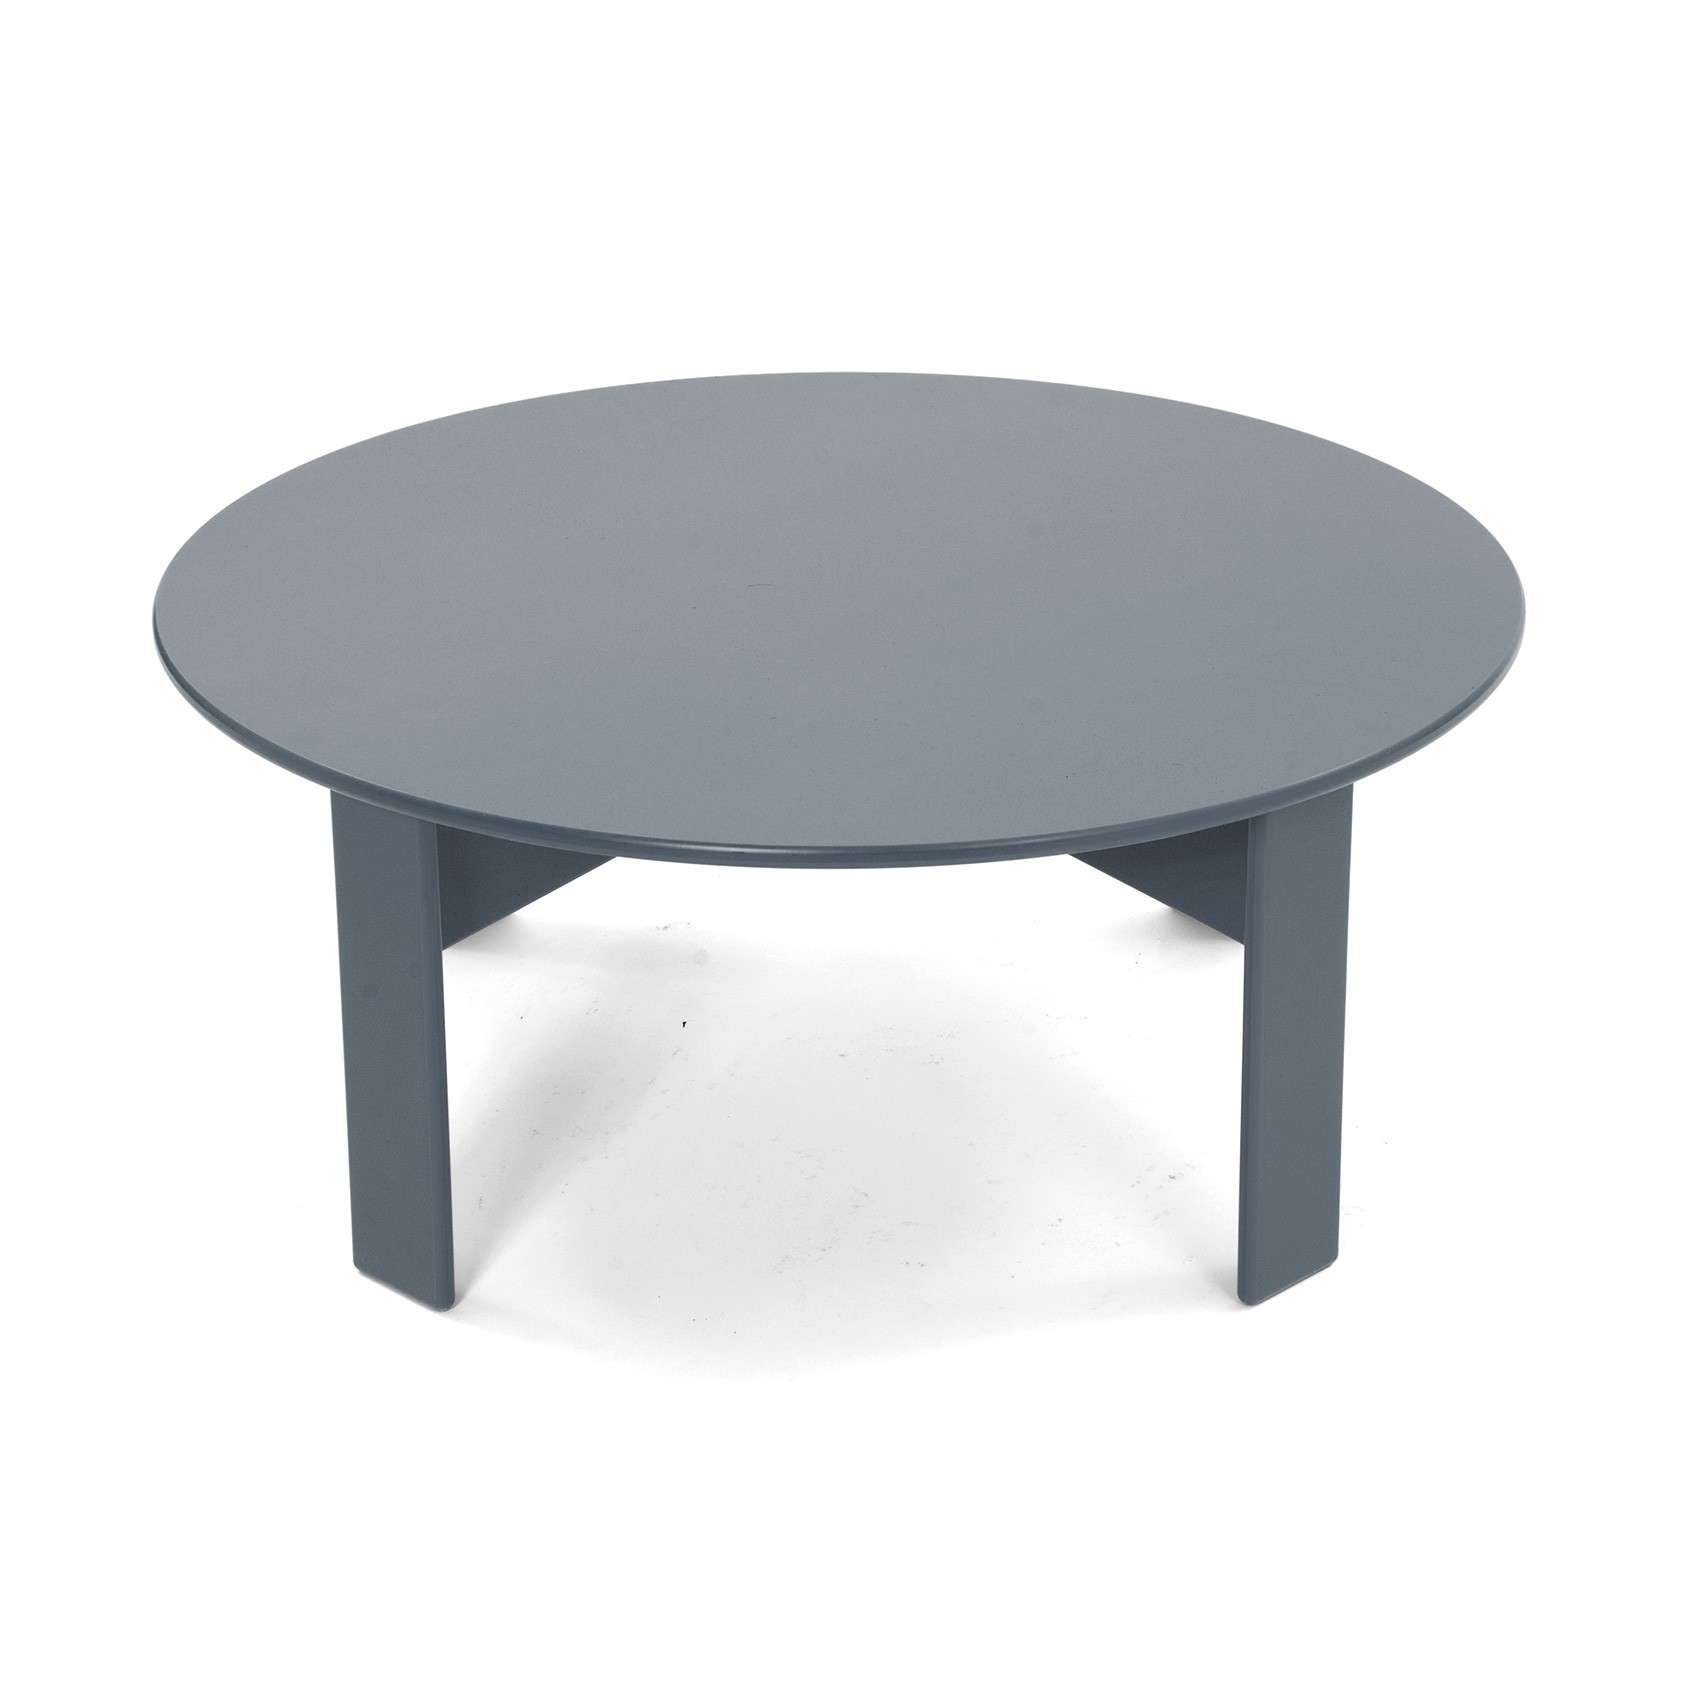 black coffee table and side inspiration tables ideas patio white fresh rowan outdoor accent collection full size legs bass drum head unusual lamps inch tablecloth drawer vintage